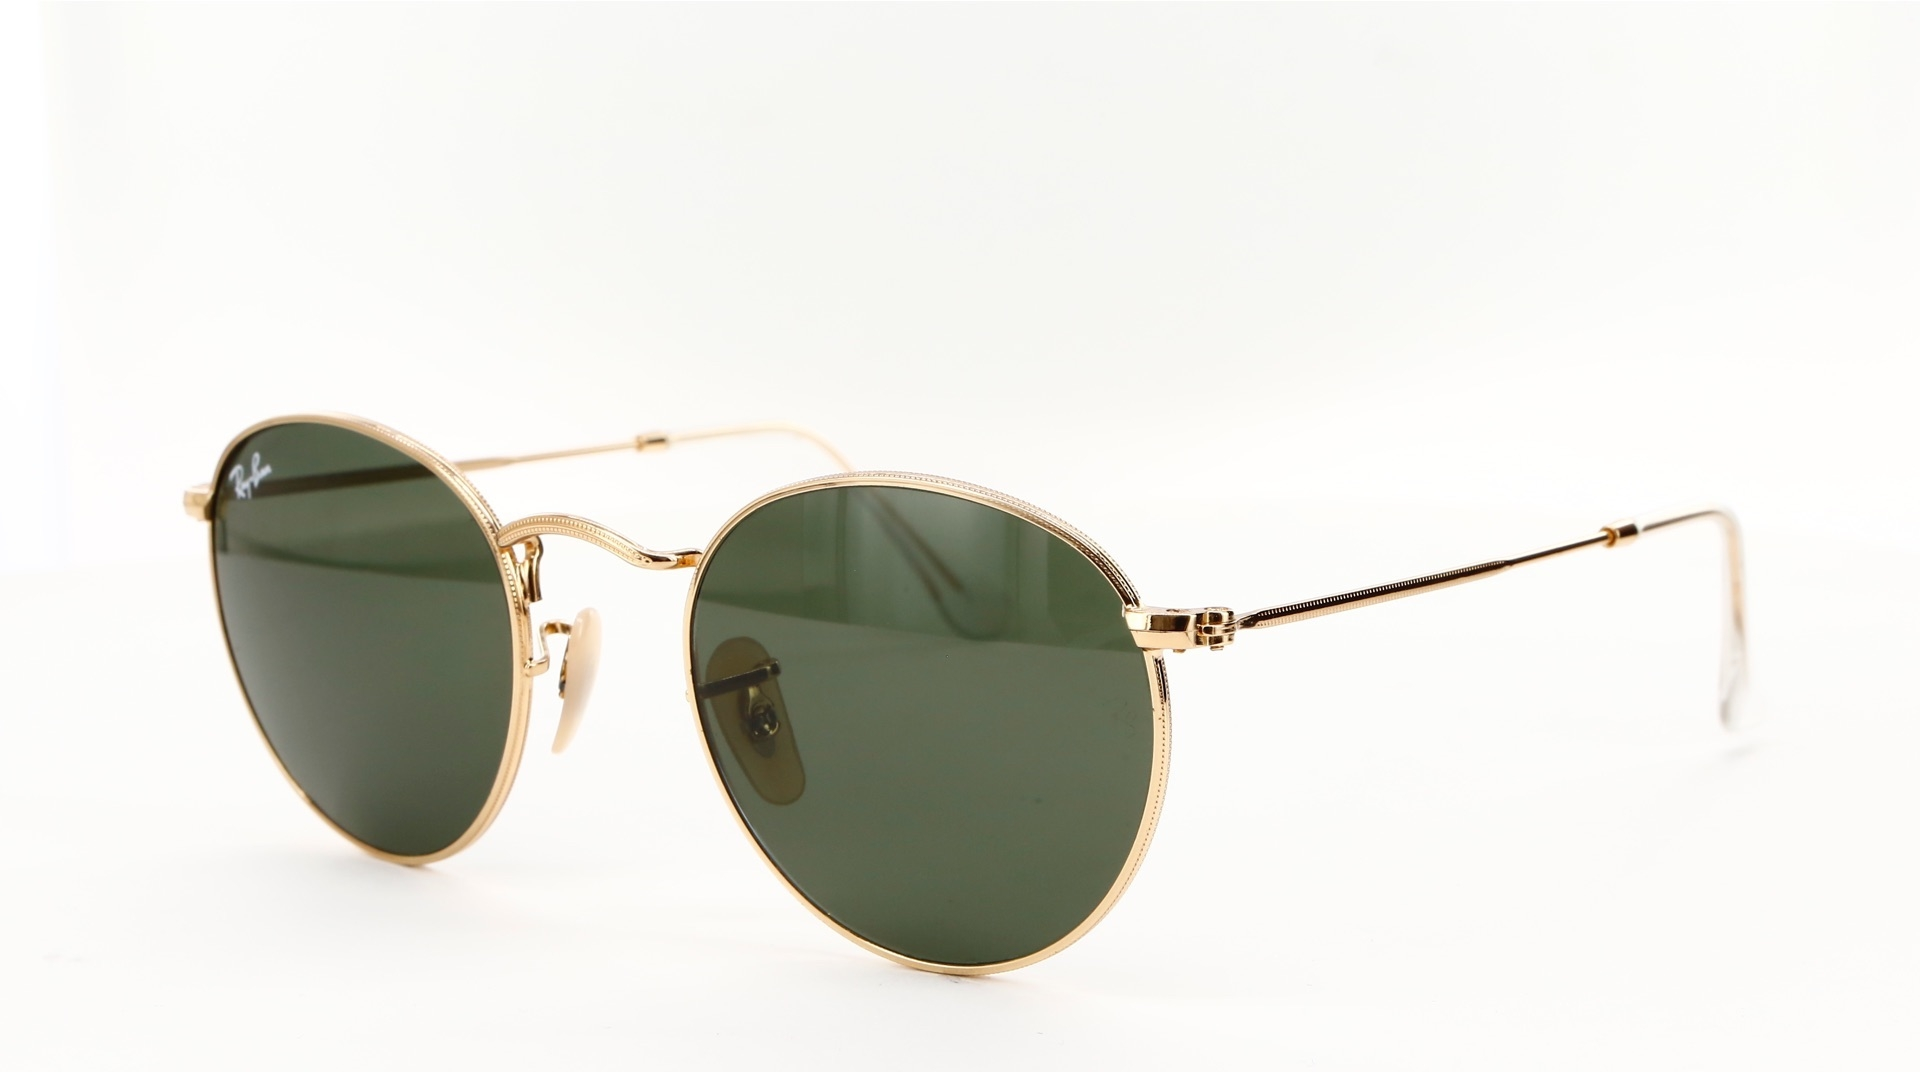 Ray-Ban - ref: 62837